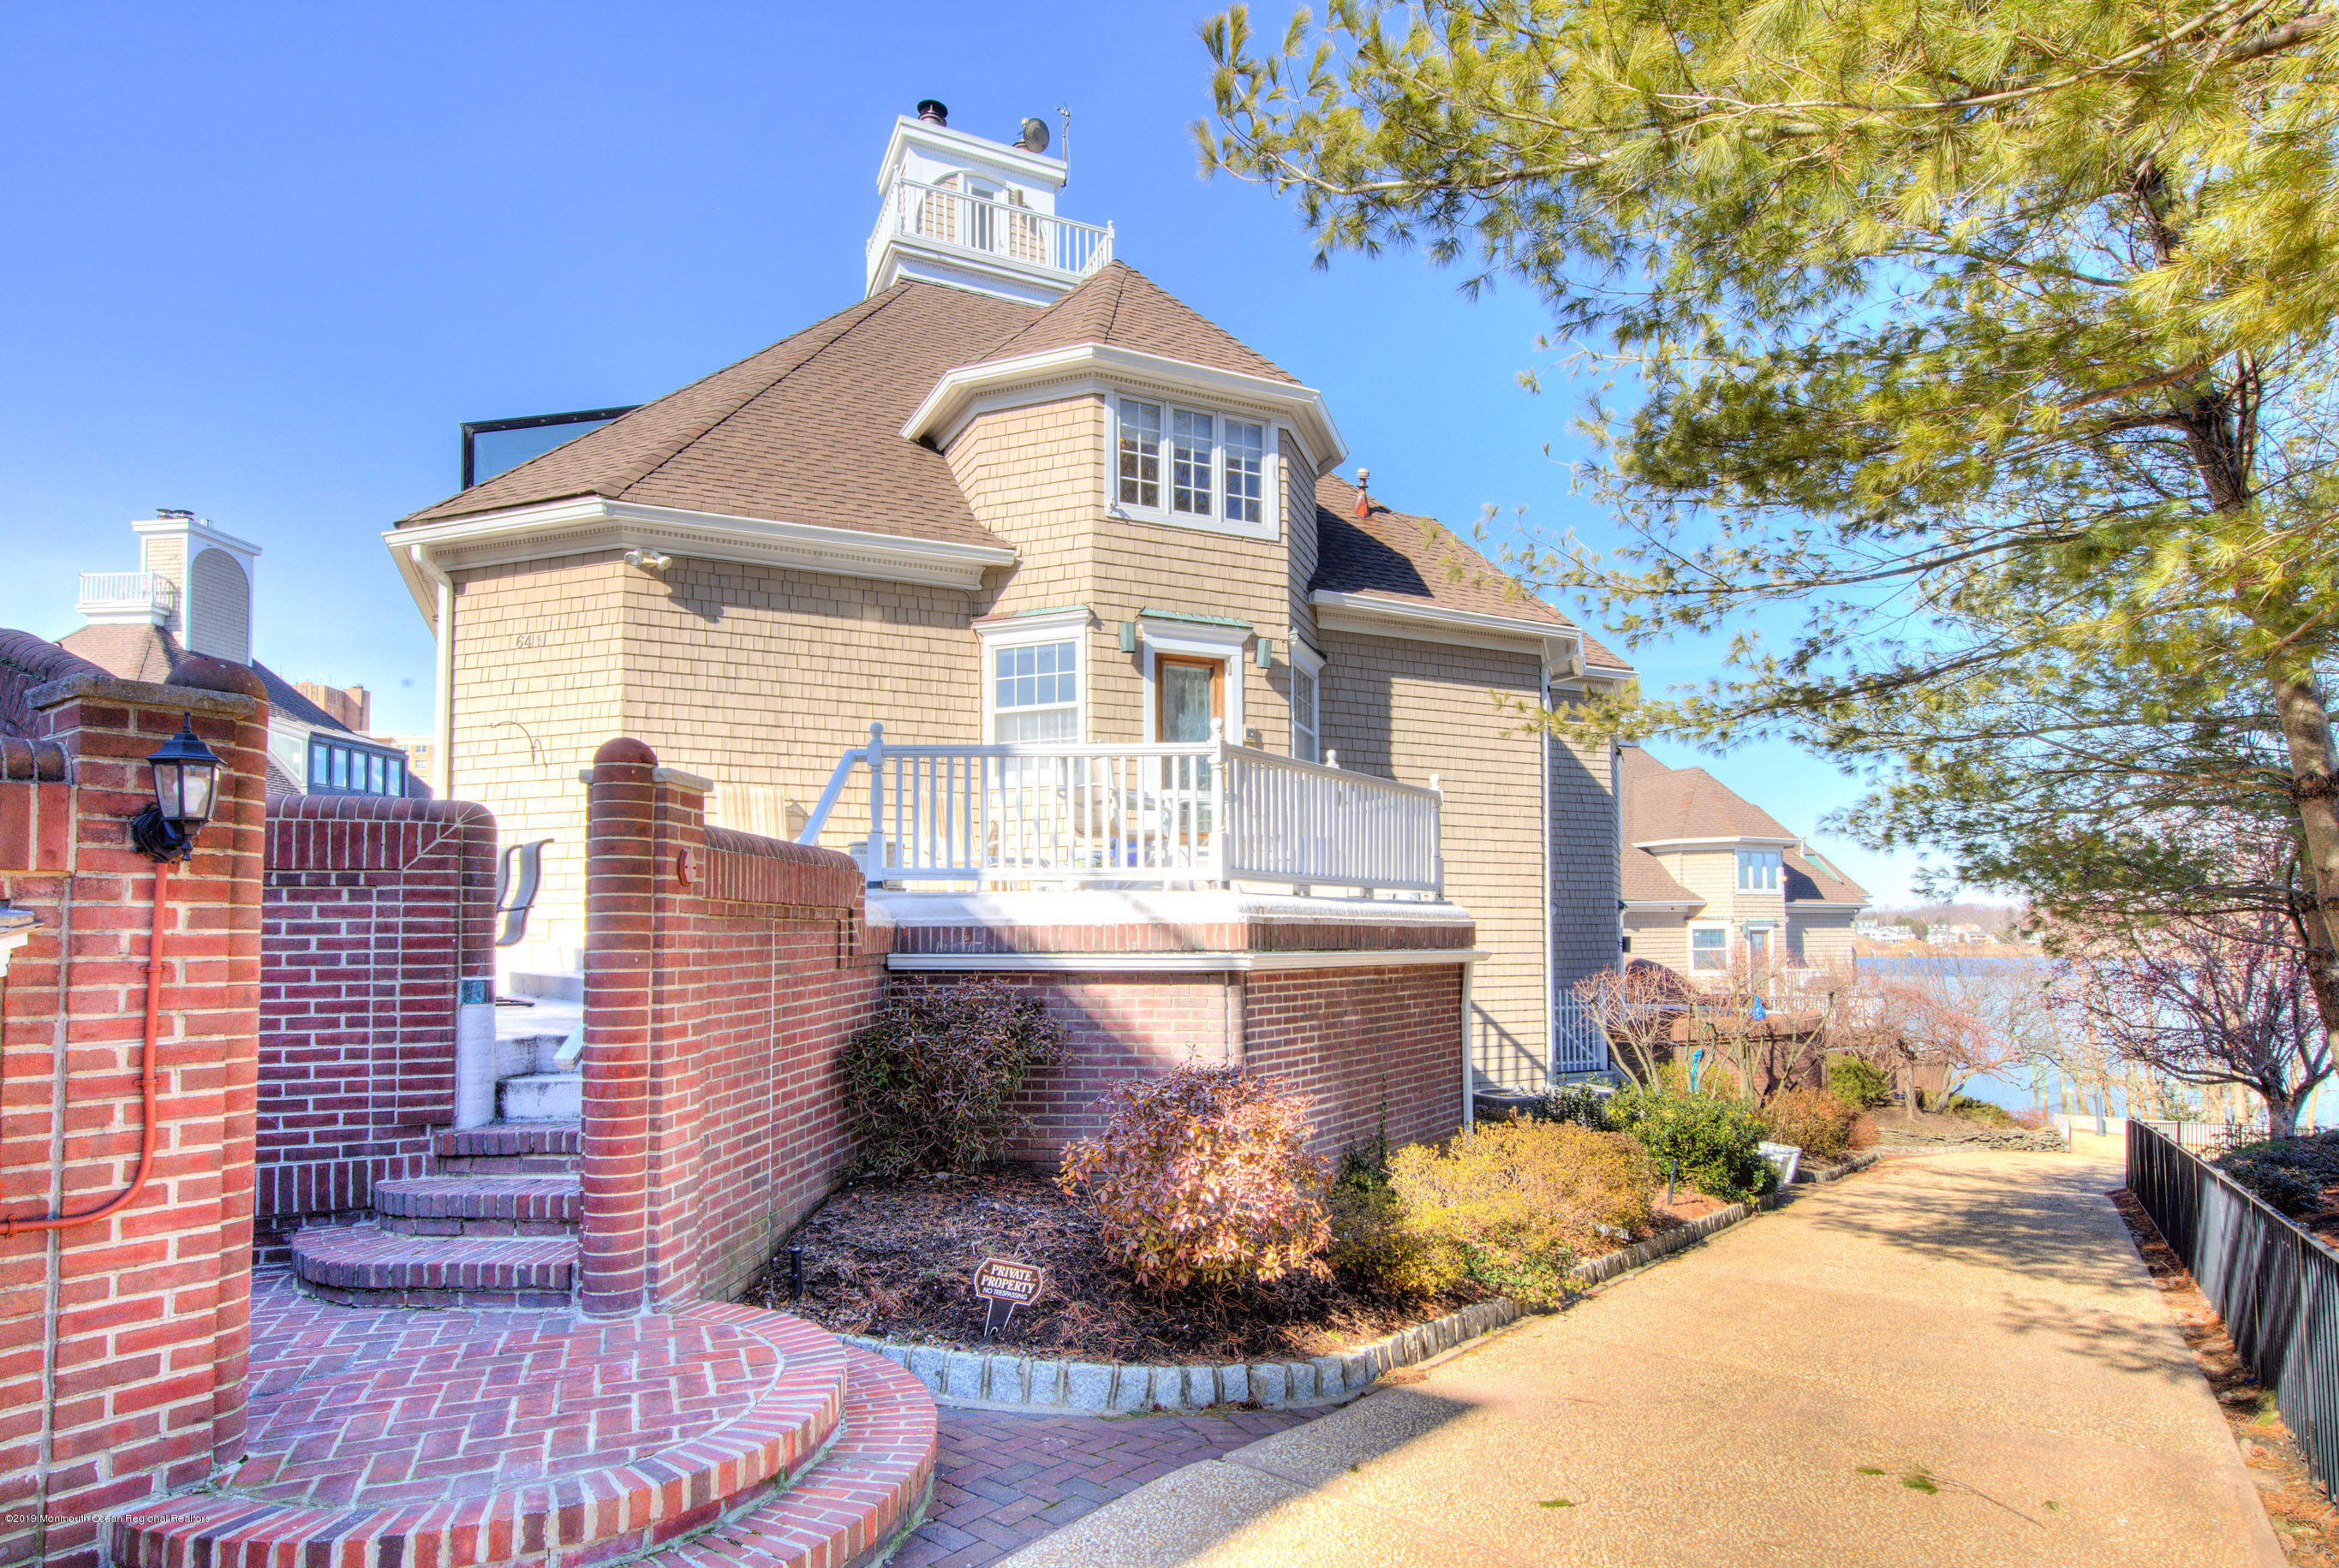 Photo of 64B W Front Street, Red Bank, NJ 07701